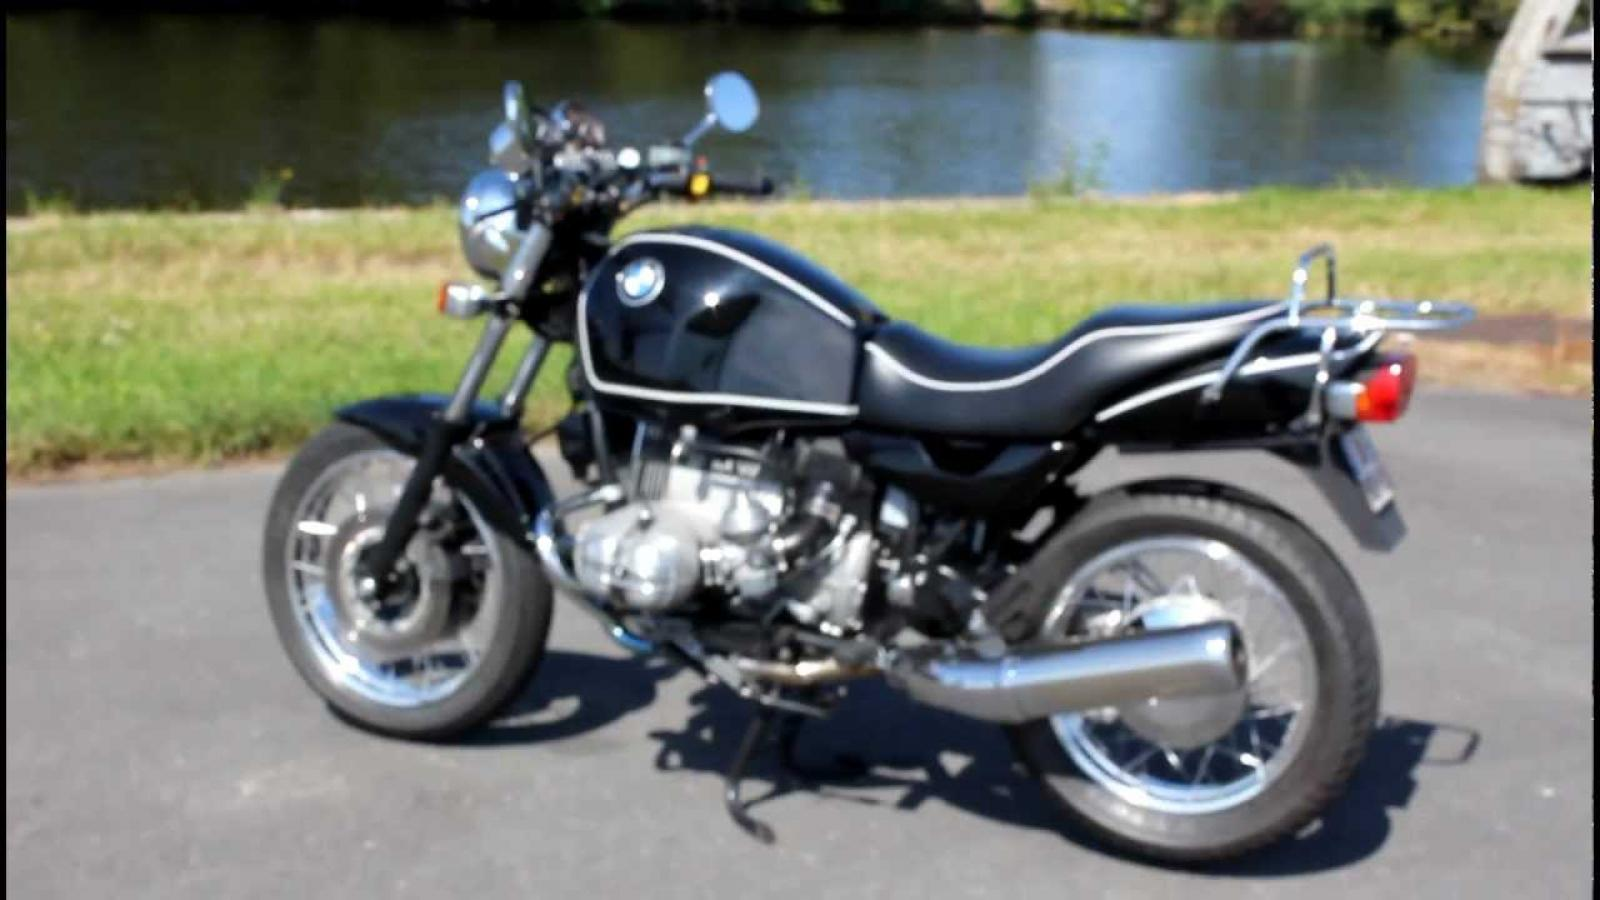 BMW R80GS 1996 images #154853